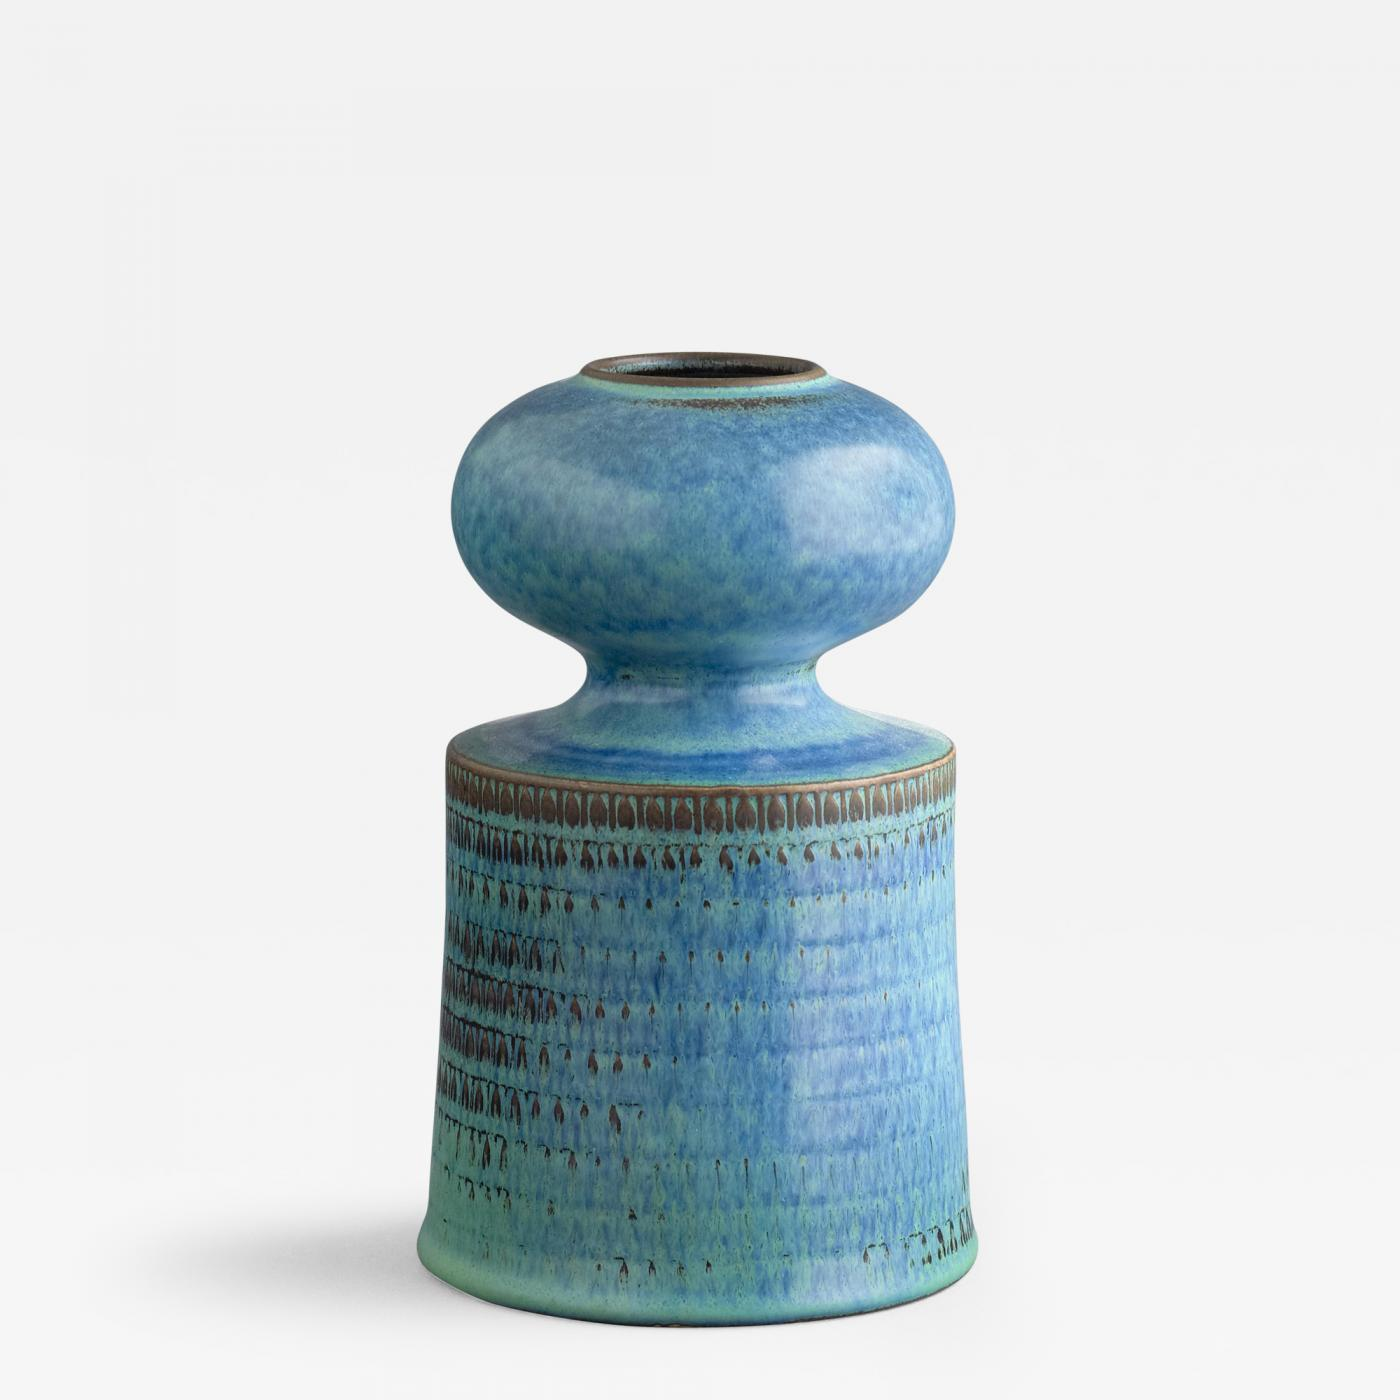 Stig lindberg turquoise colored vase with cylindrical base and listings decorative arts objects vases jars urns reviewsmspy